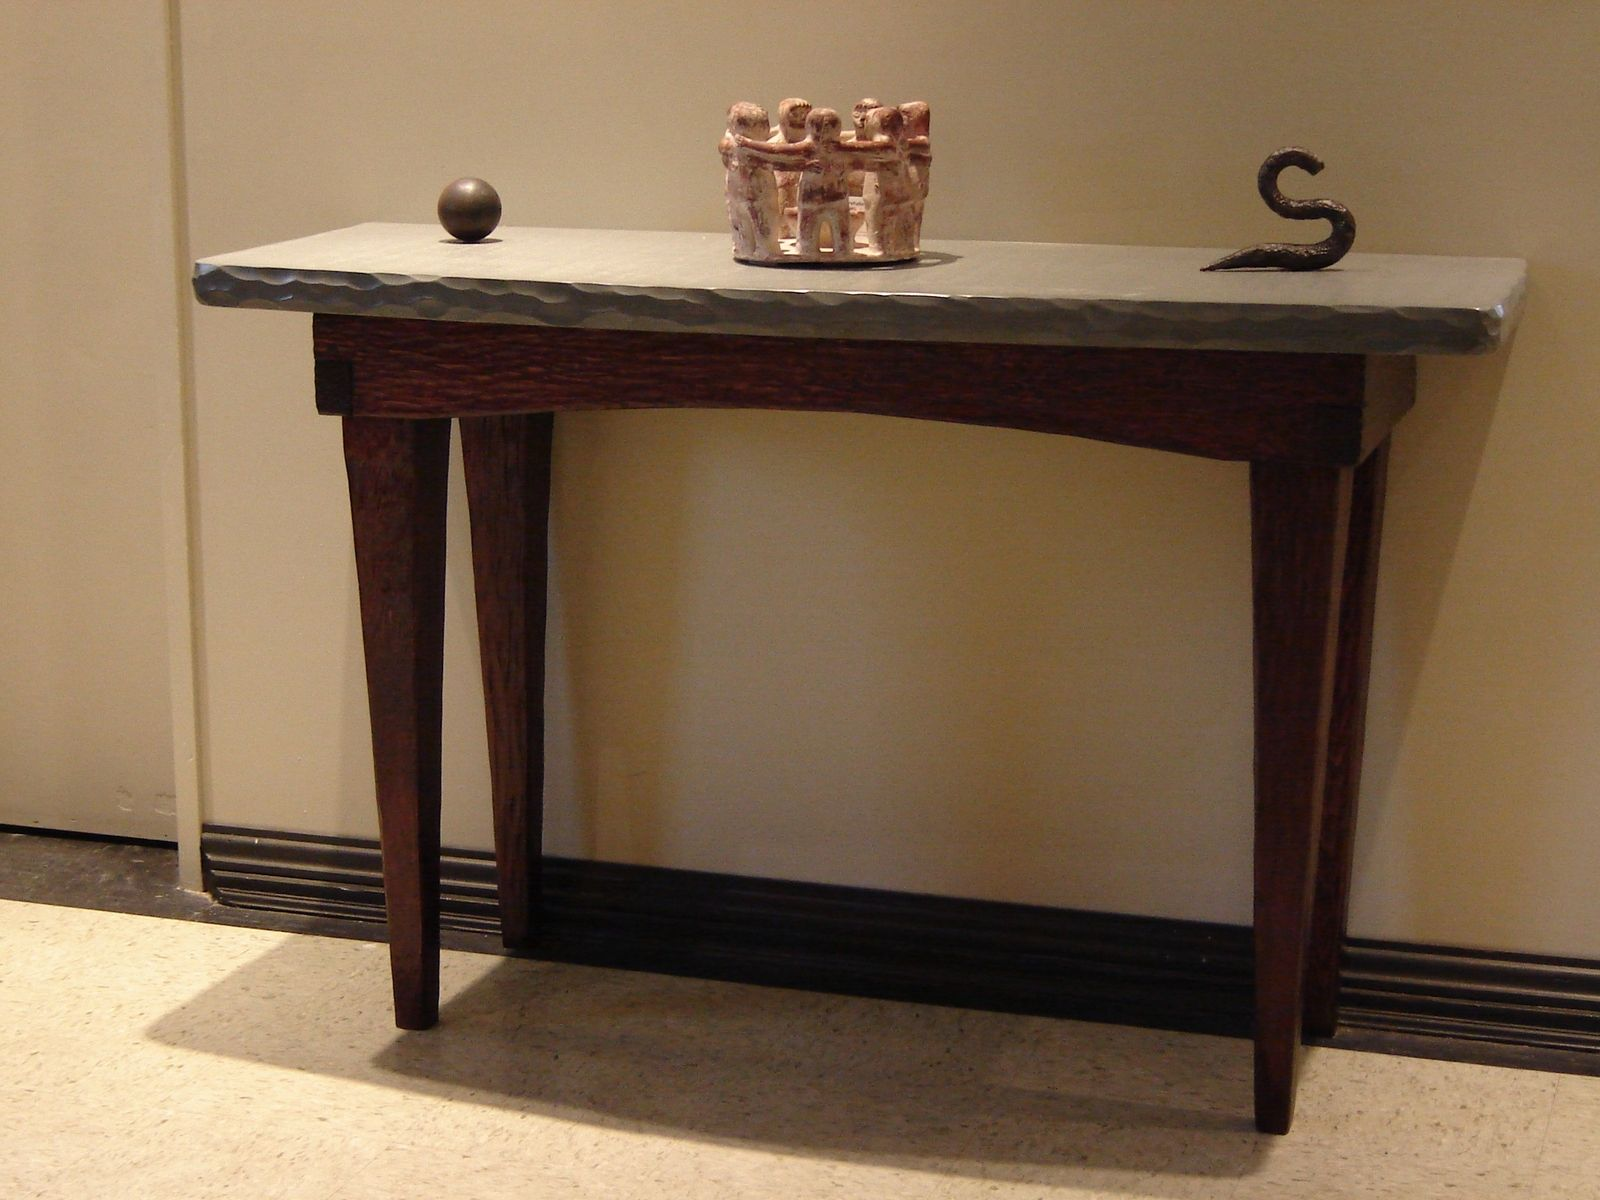 custom foyer table stone and wood stonehunterstudio round accent for made ethan allen square coffee decorative furniture legs kitchen nursery solid oak end tables pottery barn